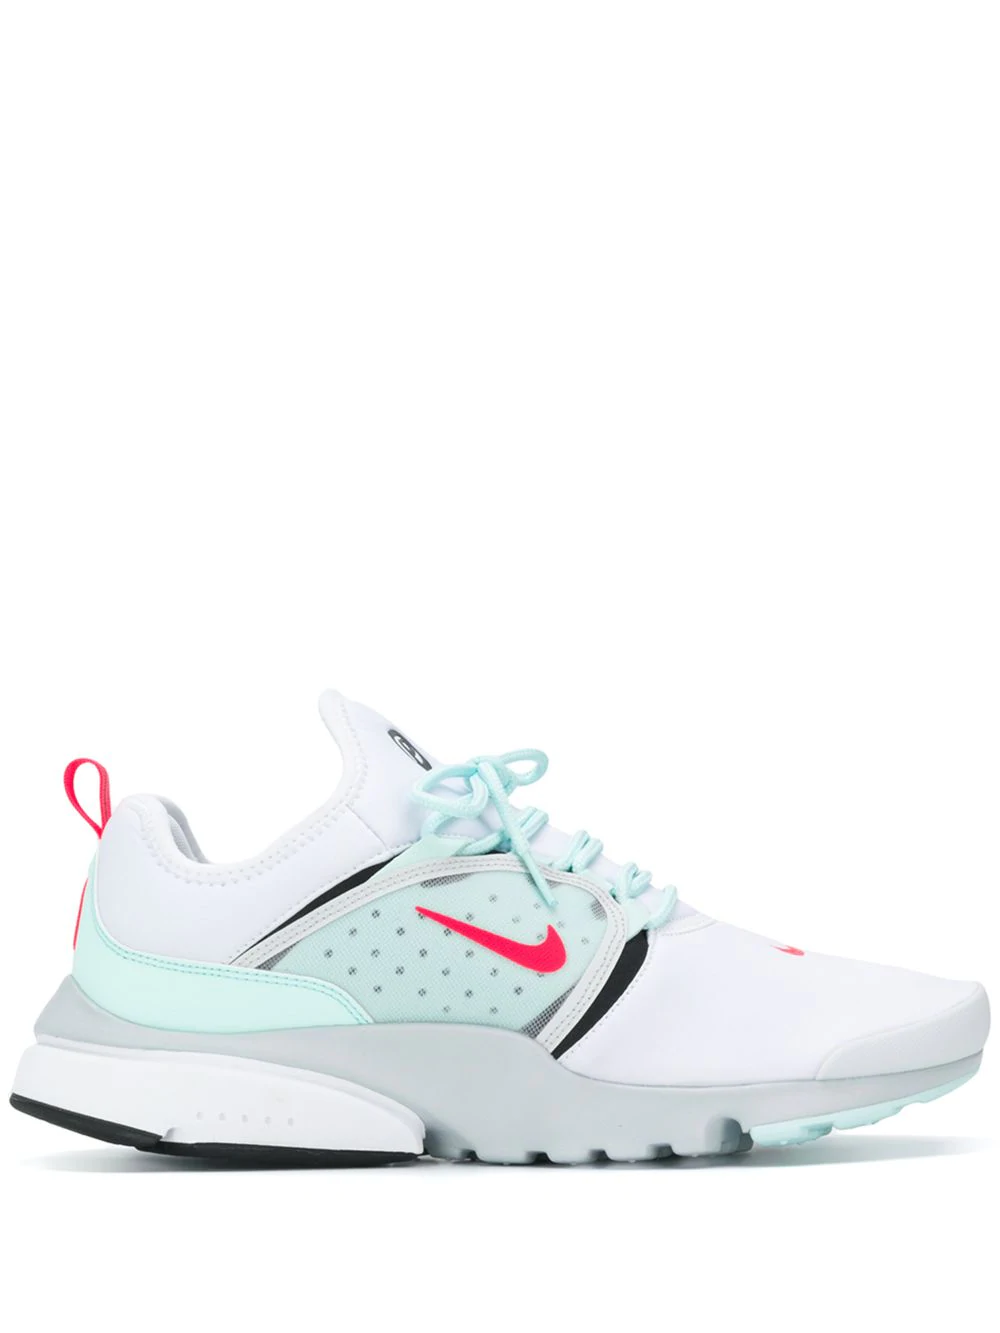 7684821acf6c Nike  Midnight Fly  Sneakers - Weiß In White